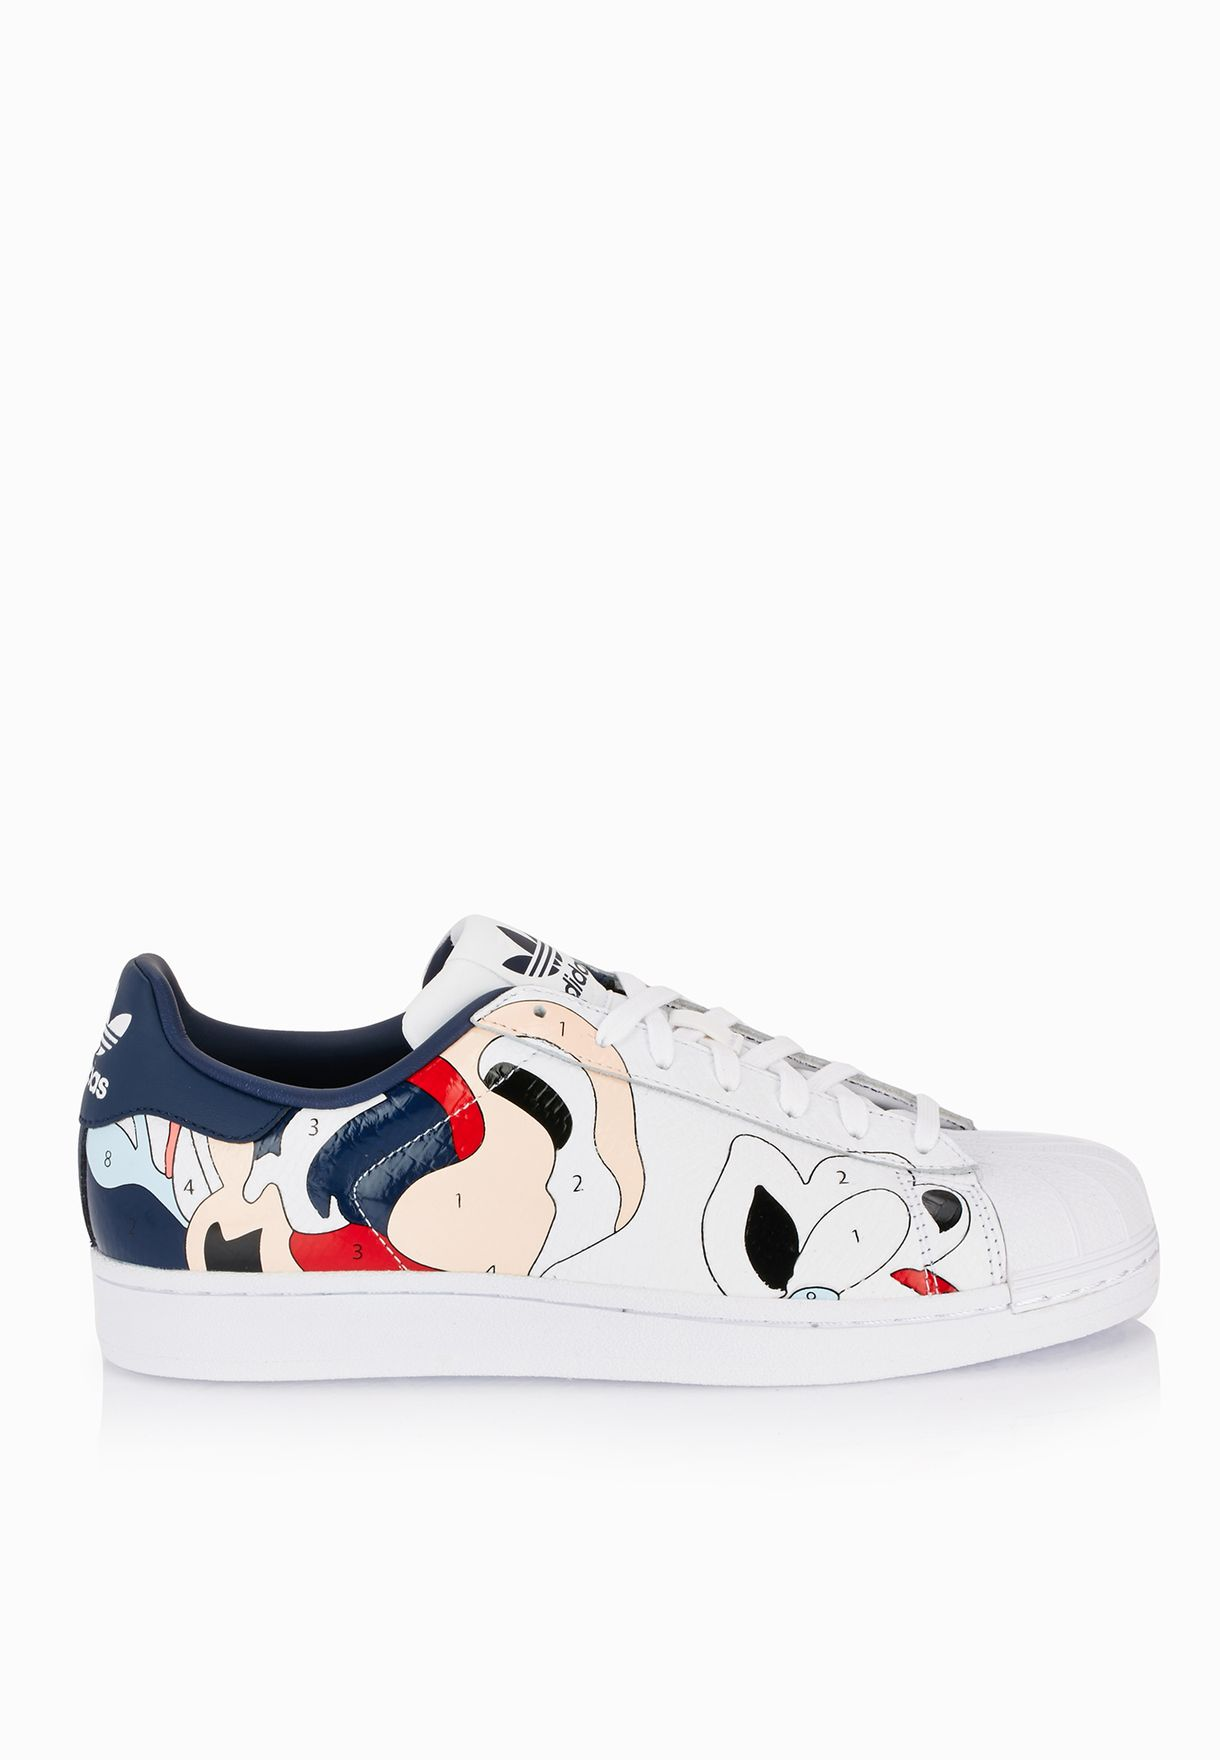 BUTY ADIDAS ORIGINALS SUPERSTAR RITA ORA S80289 38,5 Buy